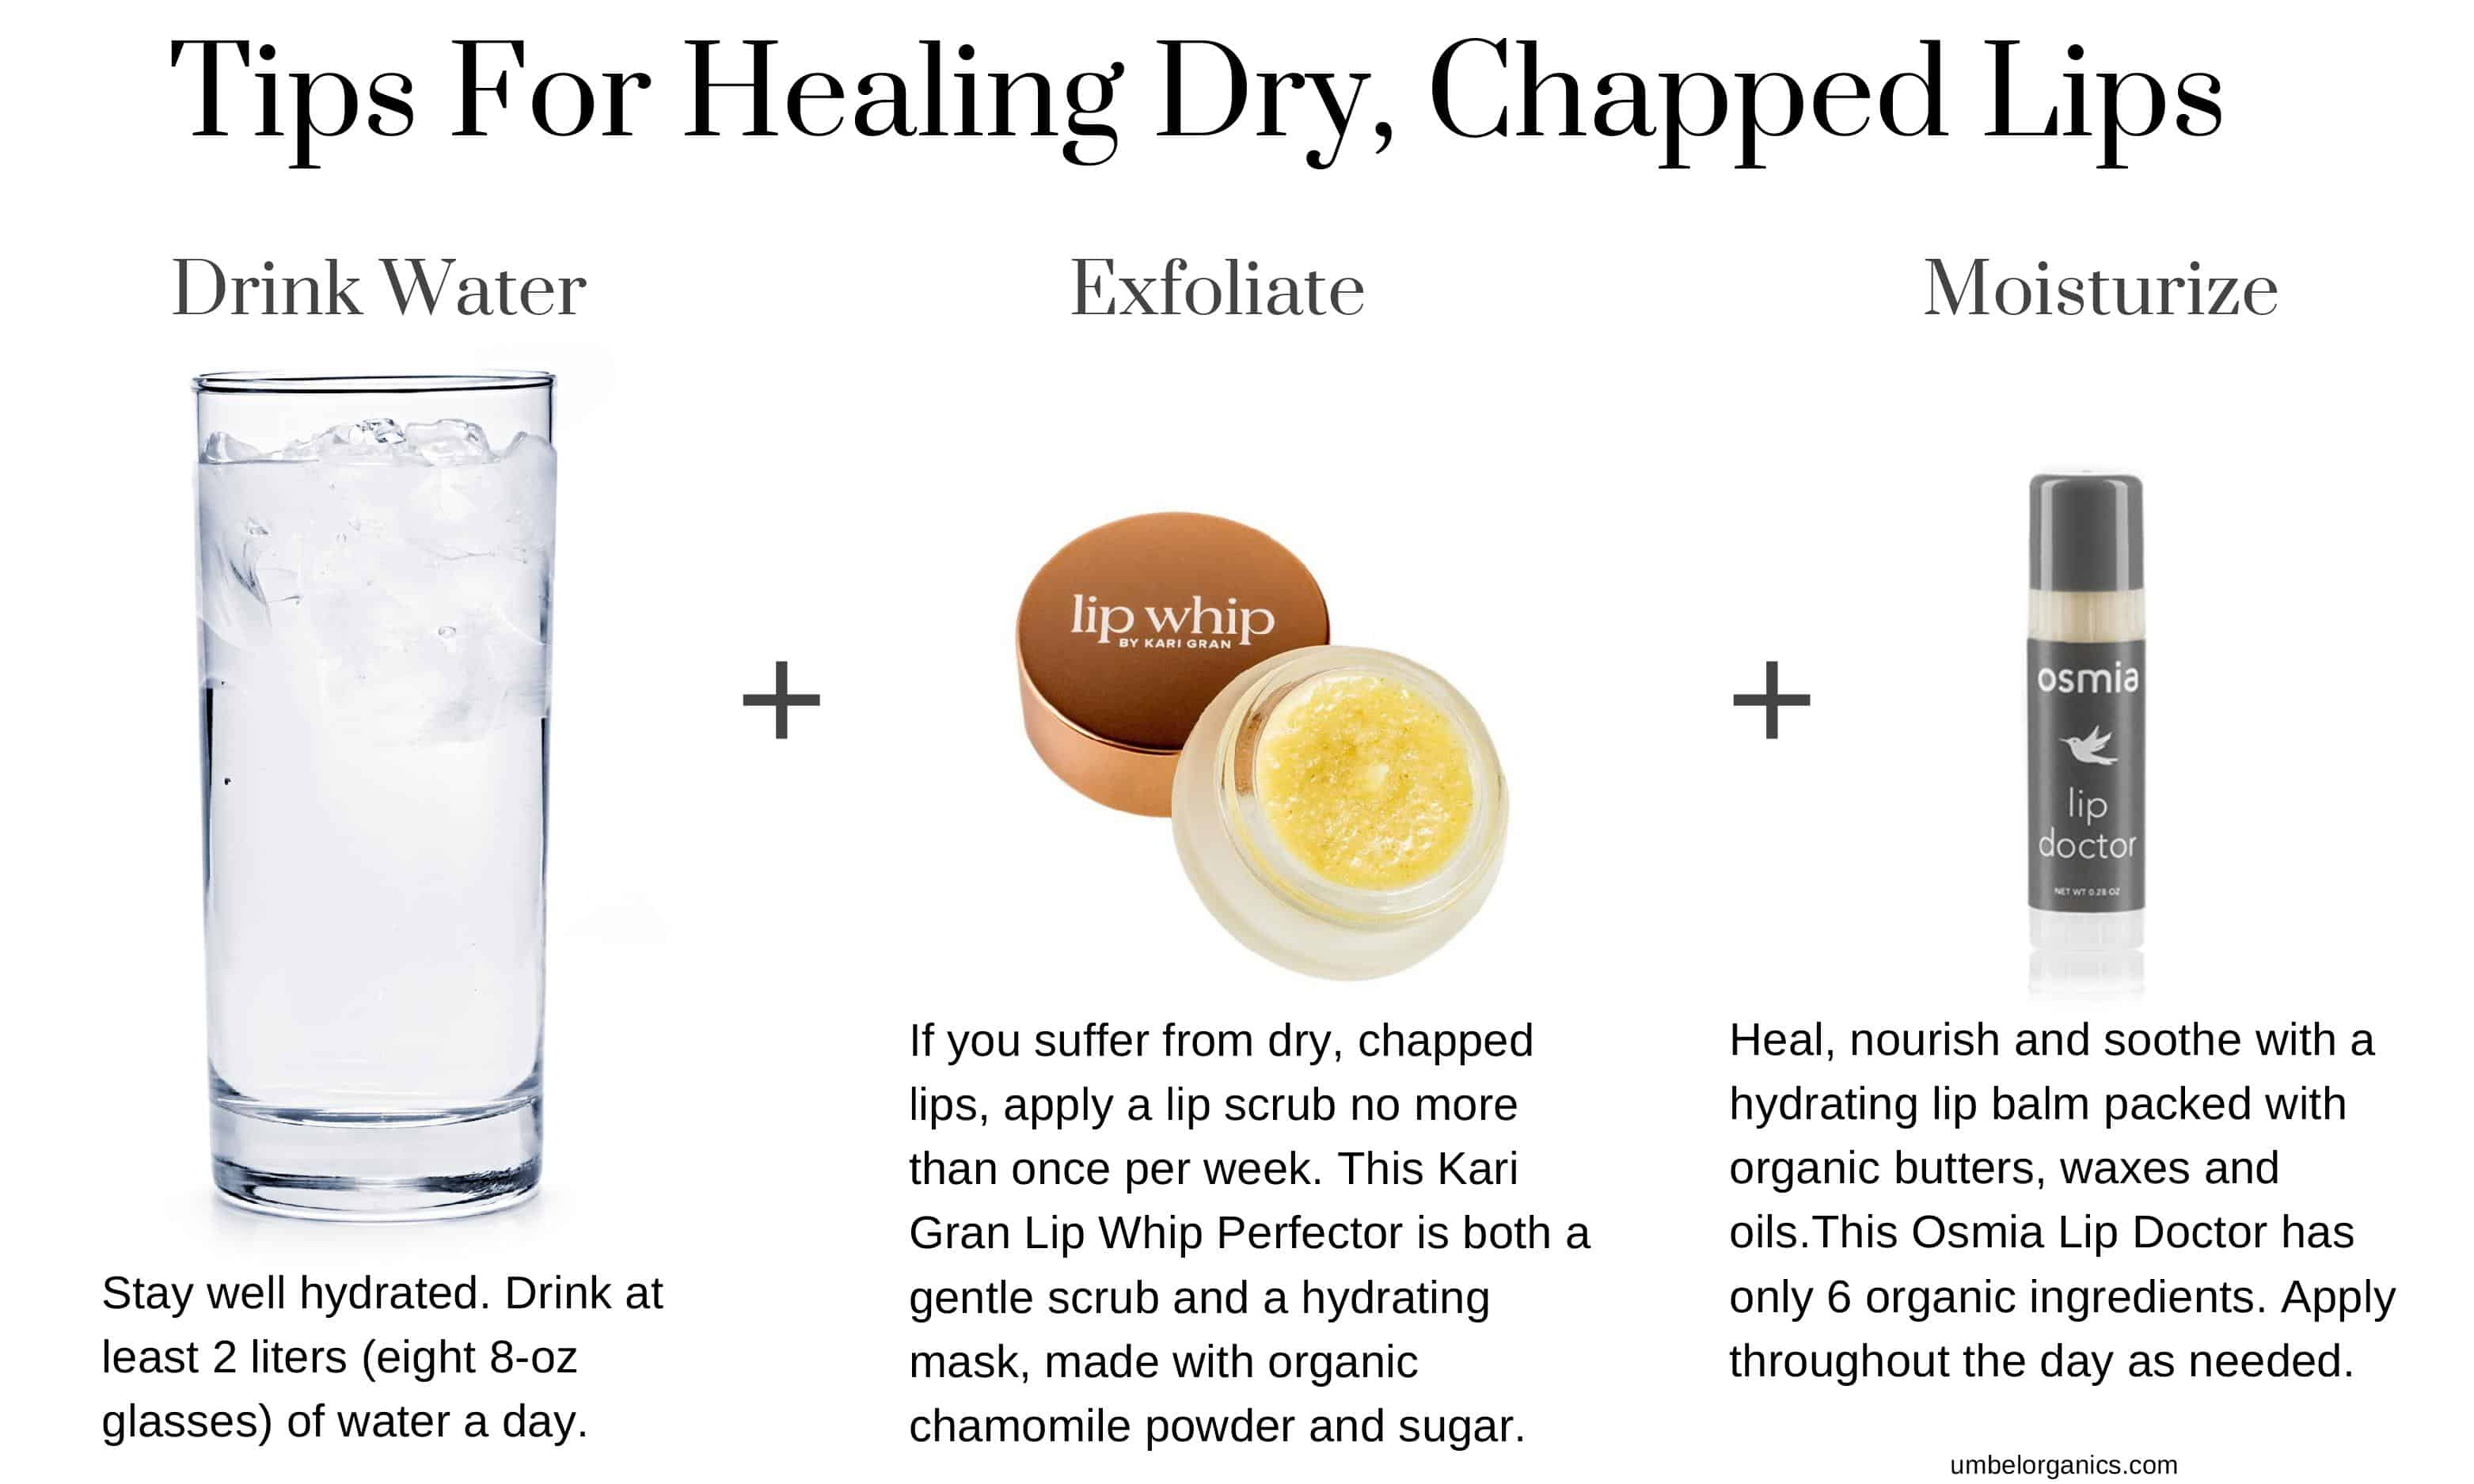 Tips for dry lips: drink water, exfoliate and apply organic lip balm